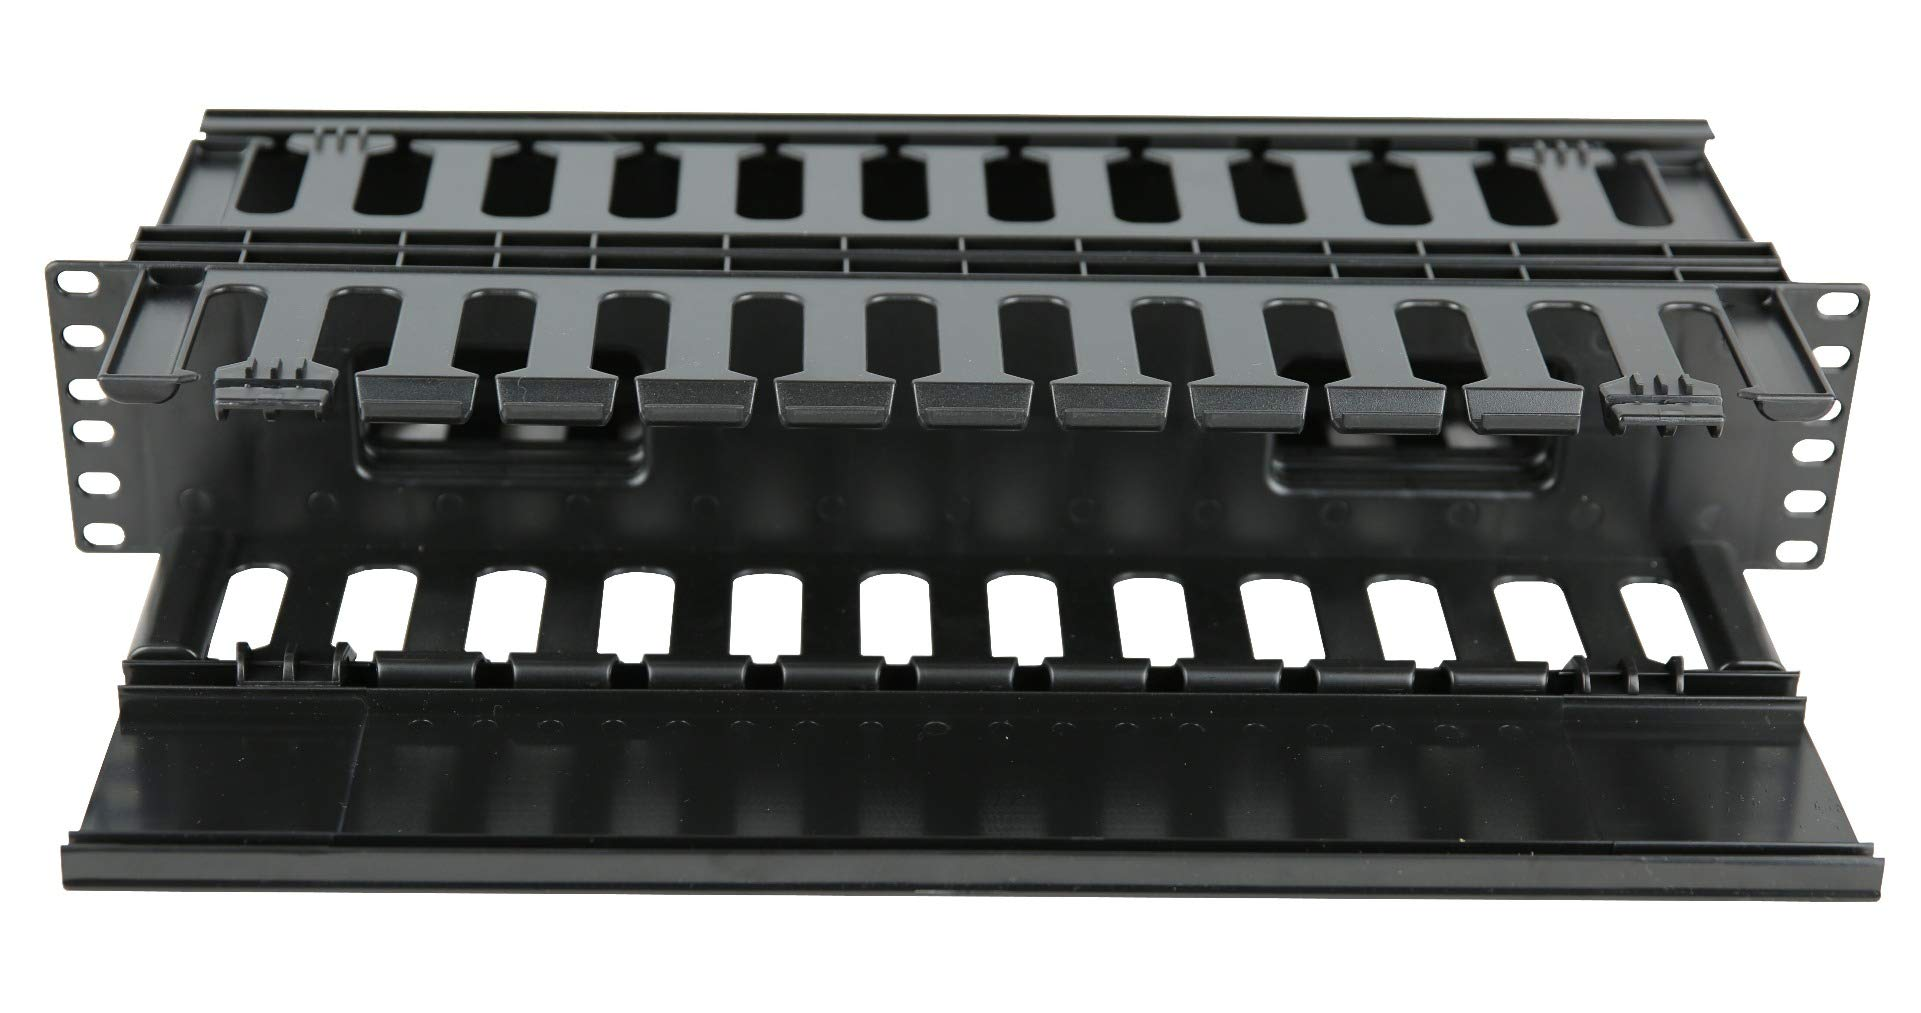 2U Horizontal Double Sided Finger Duct Cable Manager 19'' Rack Mount by Raising Electronics (Image #3)